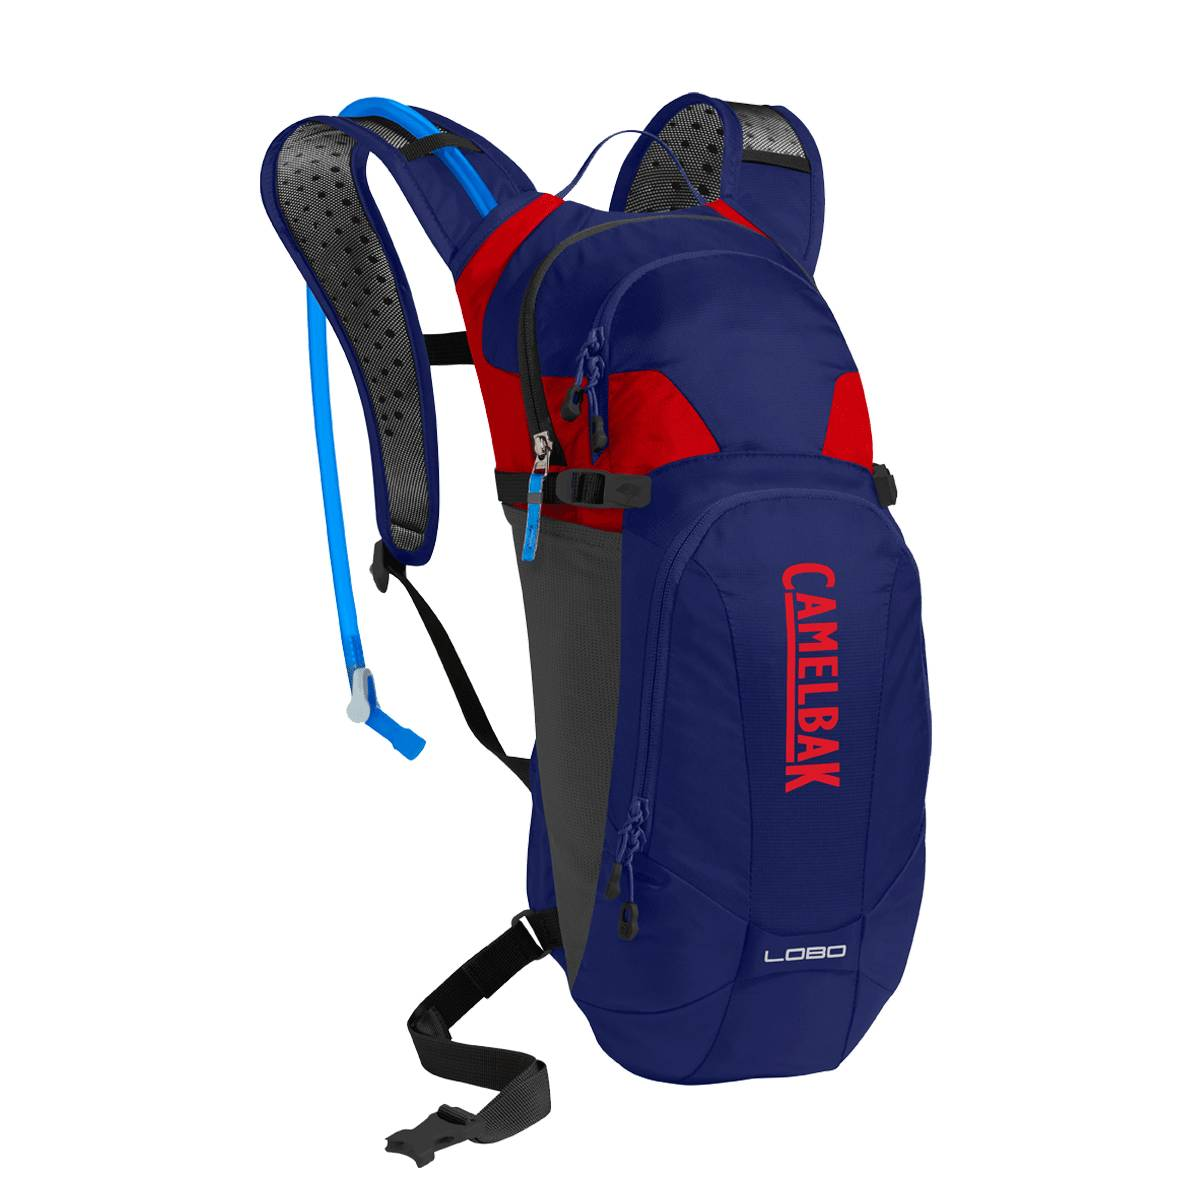 Camelbak Lobo Hydration Backpack 9 Litres - Pitch Blue/Racing Red